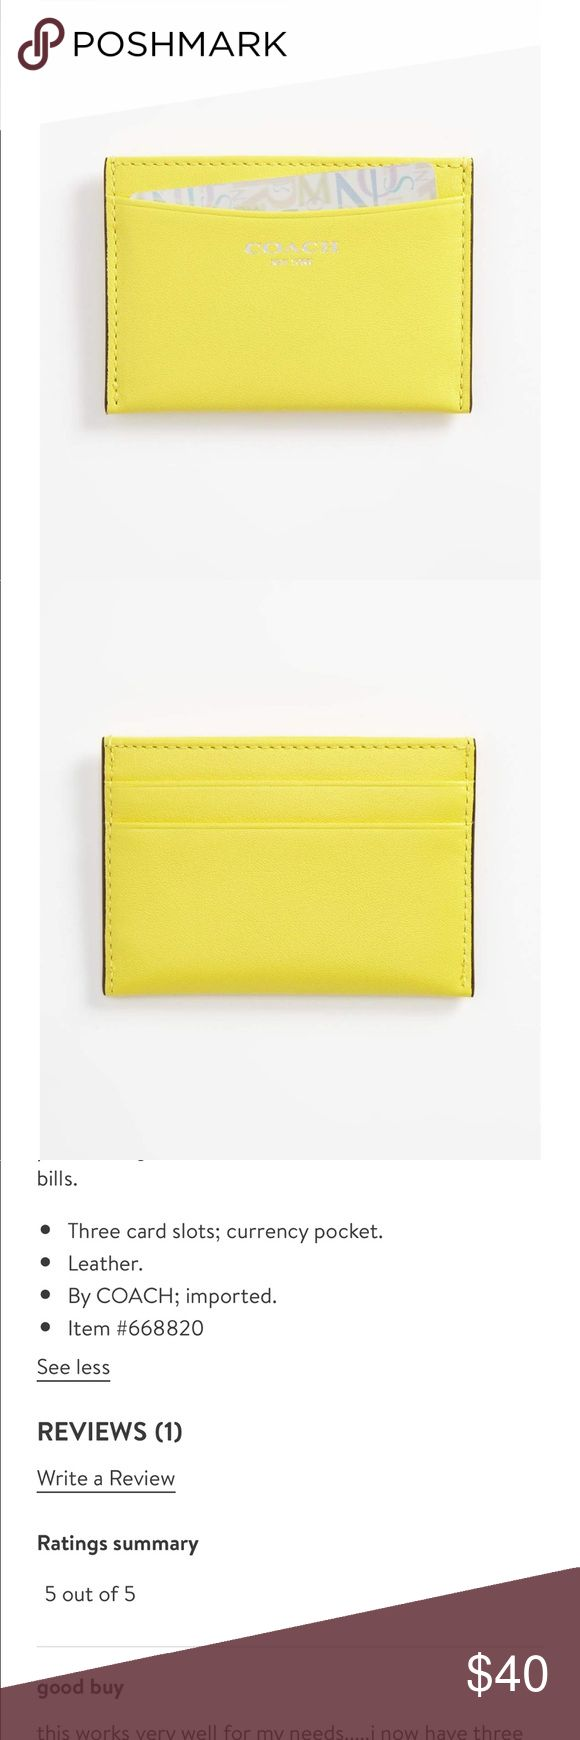 Coach legacy card case Lemon Coach legacy card case NWT Lemon details above Coach Accessories Key & Card Holders